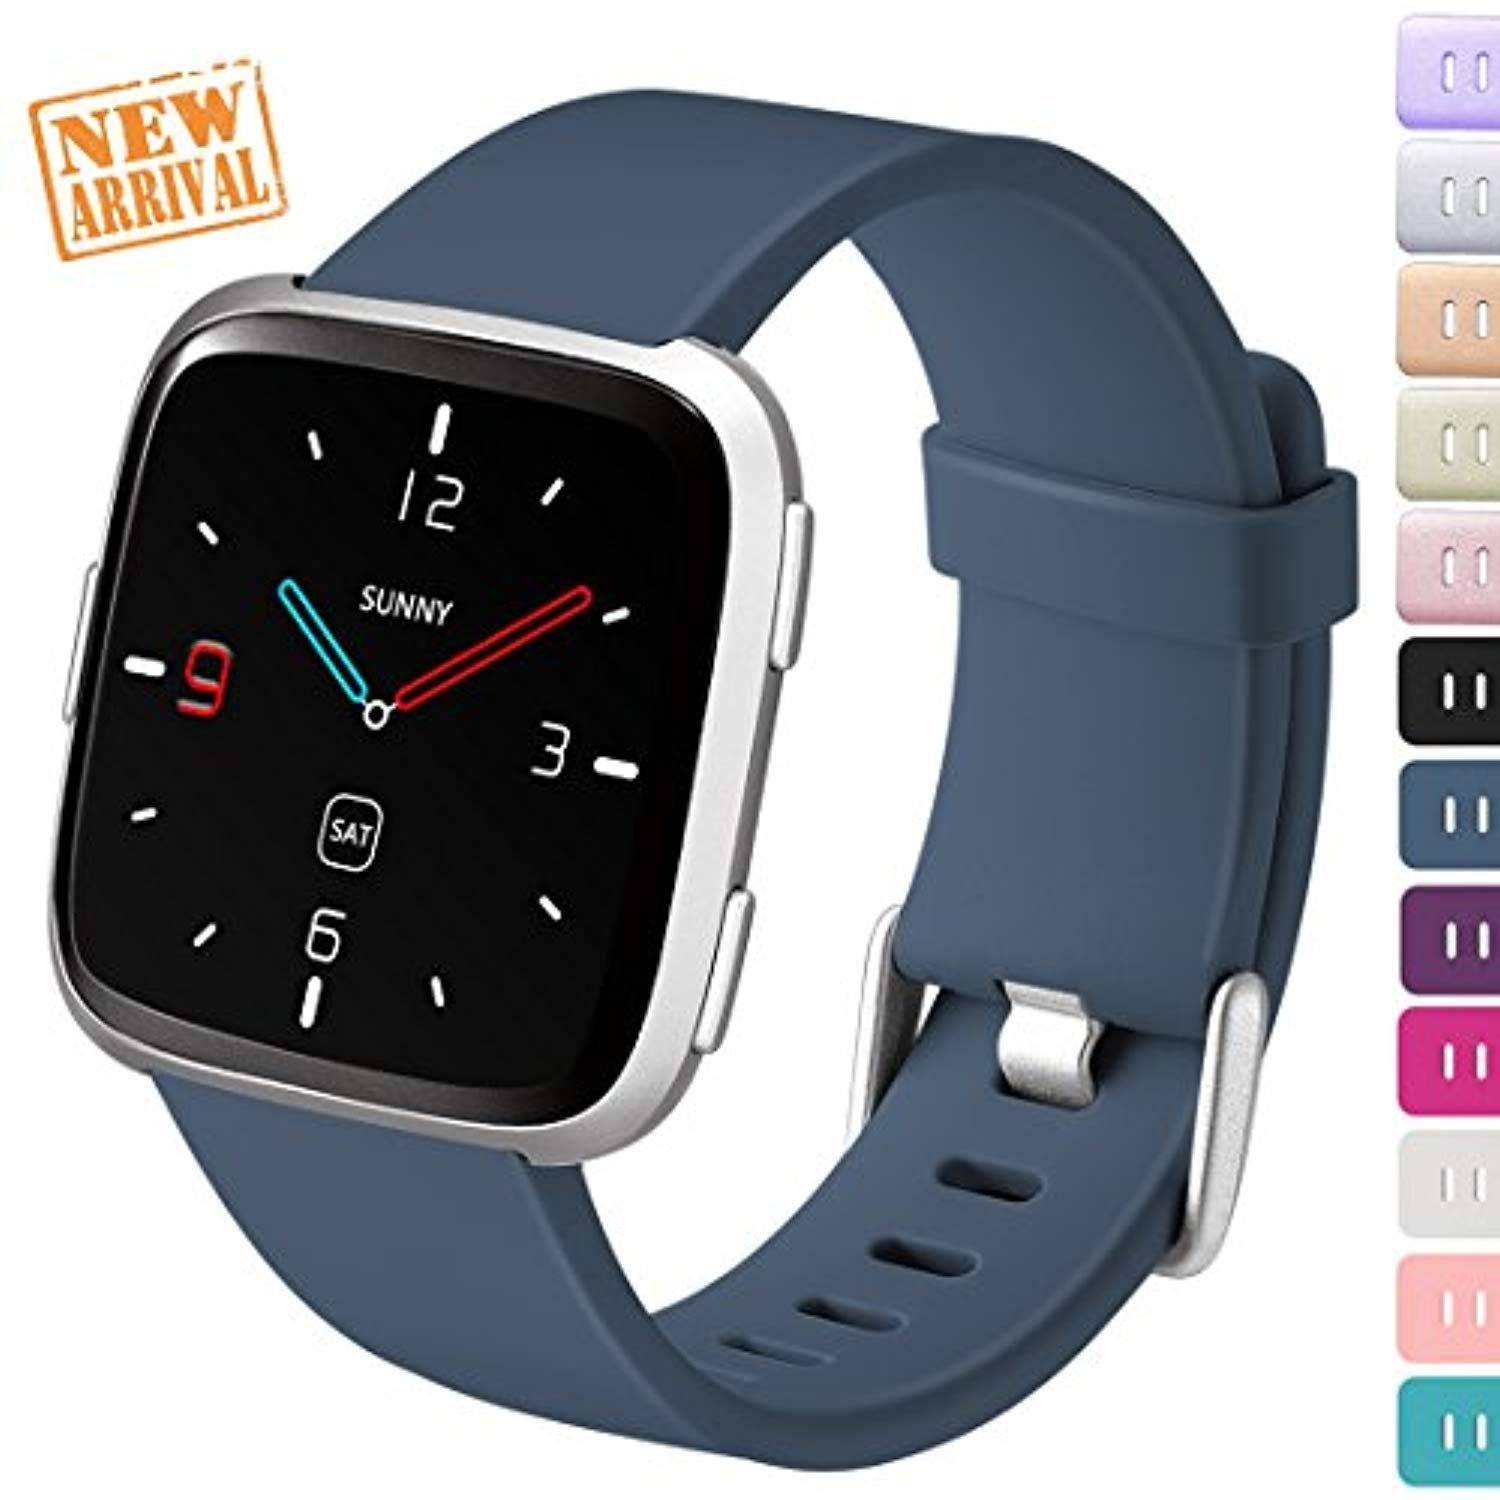 dbee2a5968f7b Ouwegaga For Fitbit Versa Bands Fitness Straps, Bands for Fitbit Versa  Smartwatch Bracelet Sport for Men Women Small Slateblue * You can get  additional ...